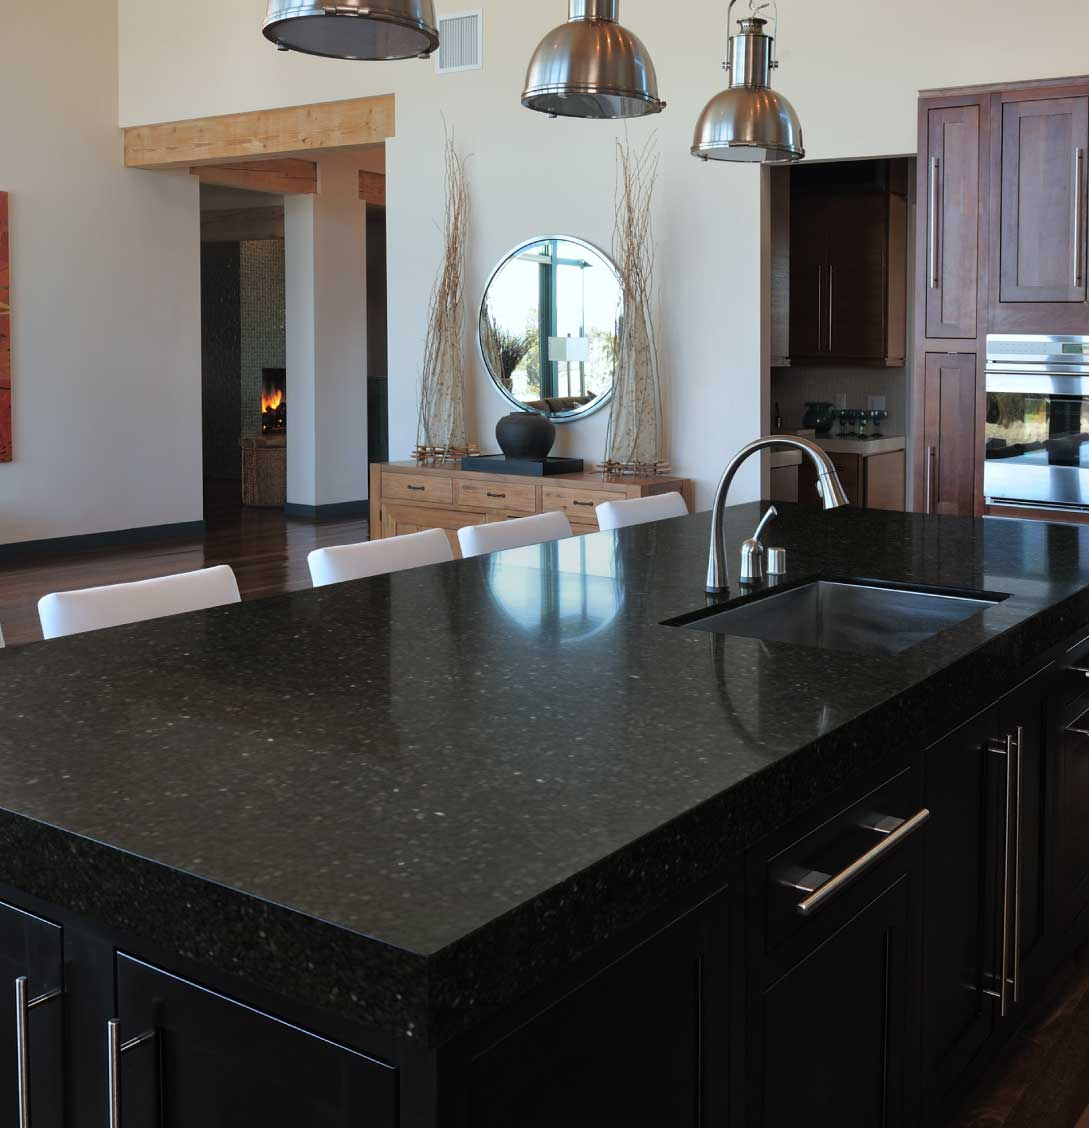 Scalea UbaTuba granite countertop kitchen